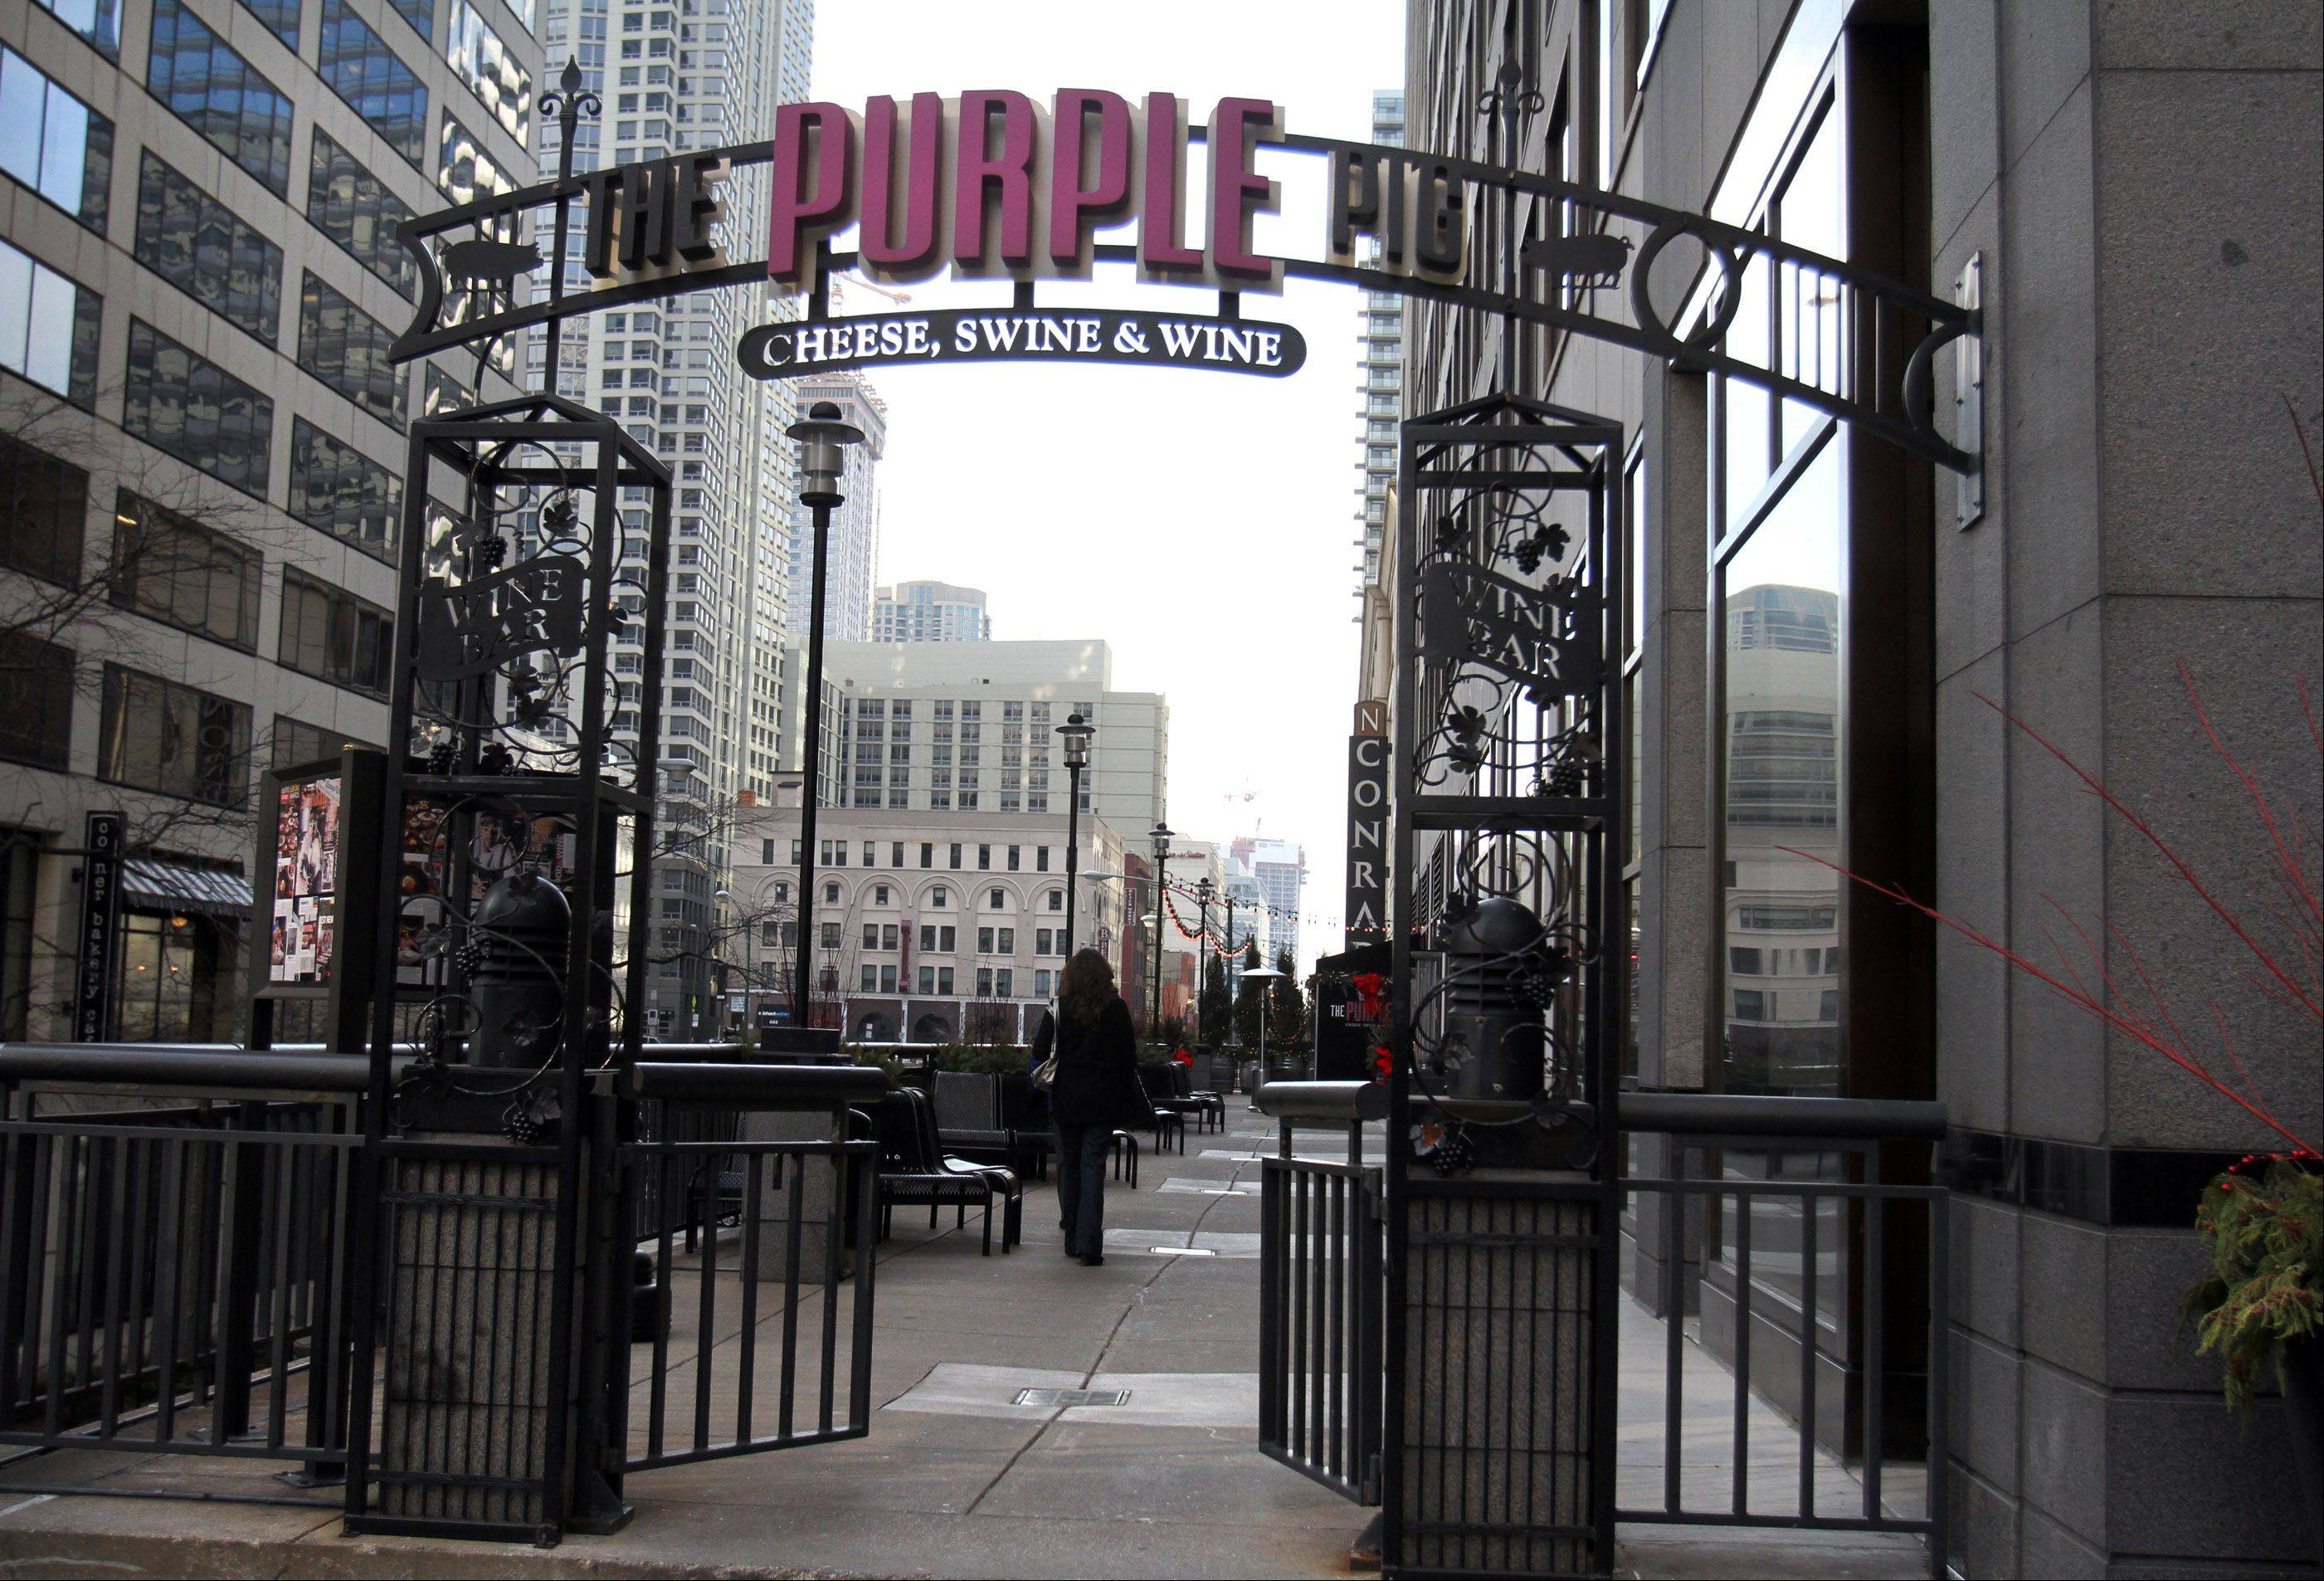 In warmer weather, The Purple Pig offers outdoor dining along a gated sidewalk right off Michigan Avenue.